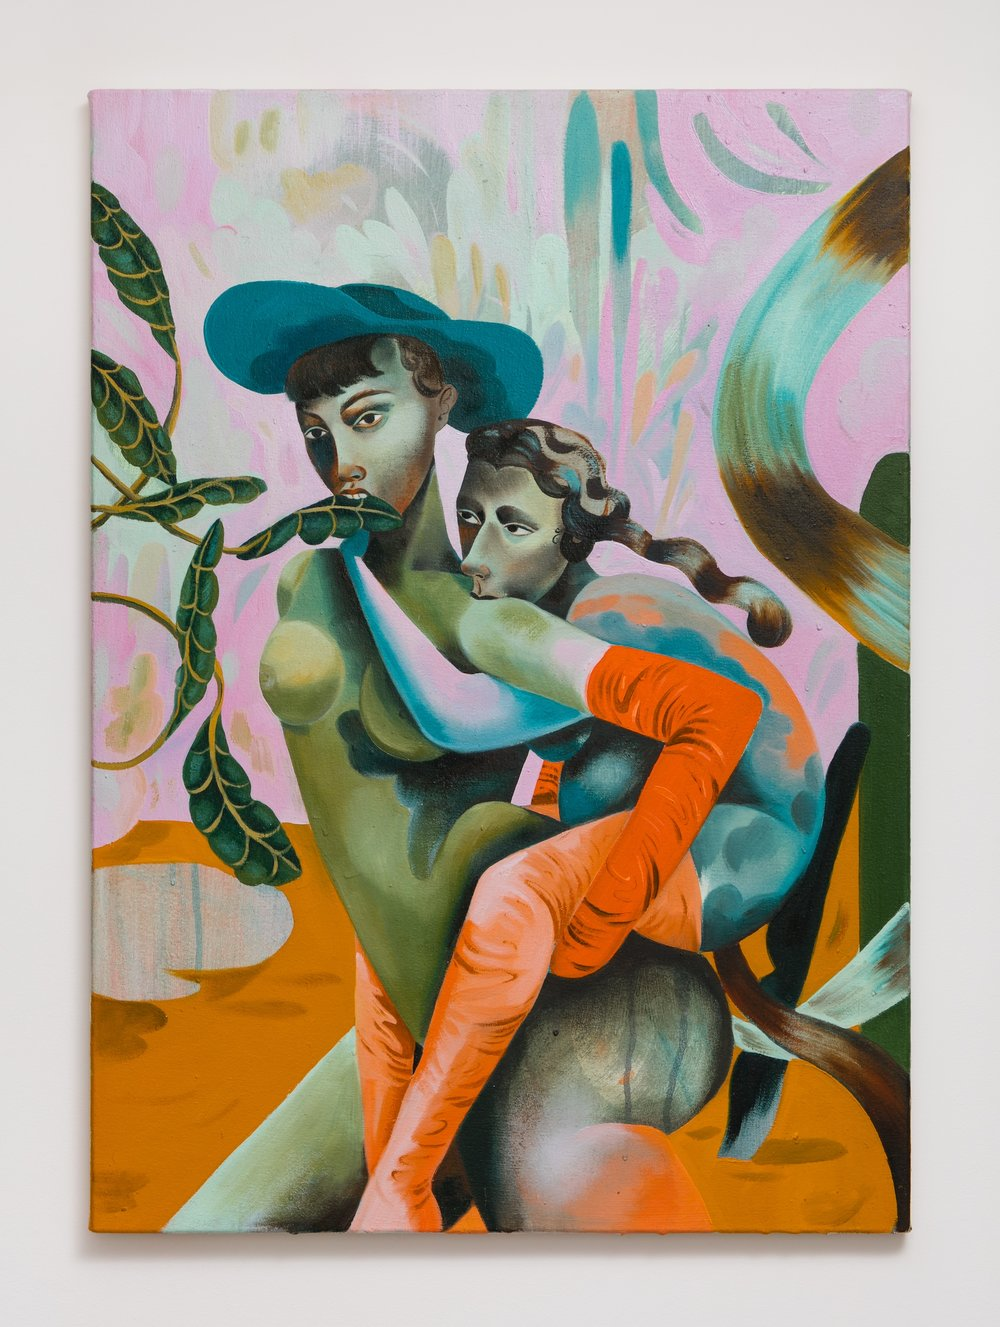 Jessie Makinson    She-dandies , 2018  Oil on canvas  27.5 × 22.875 inches (70 × 58 cm)